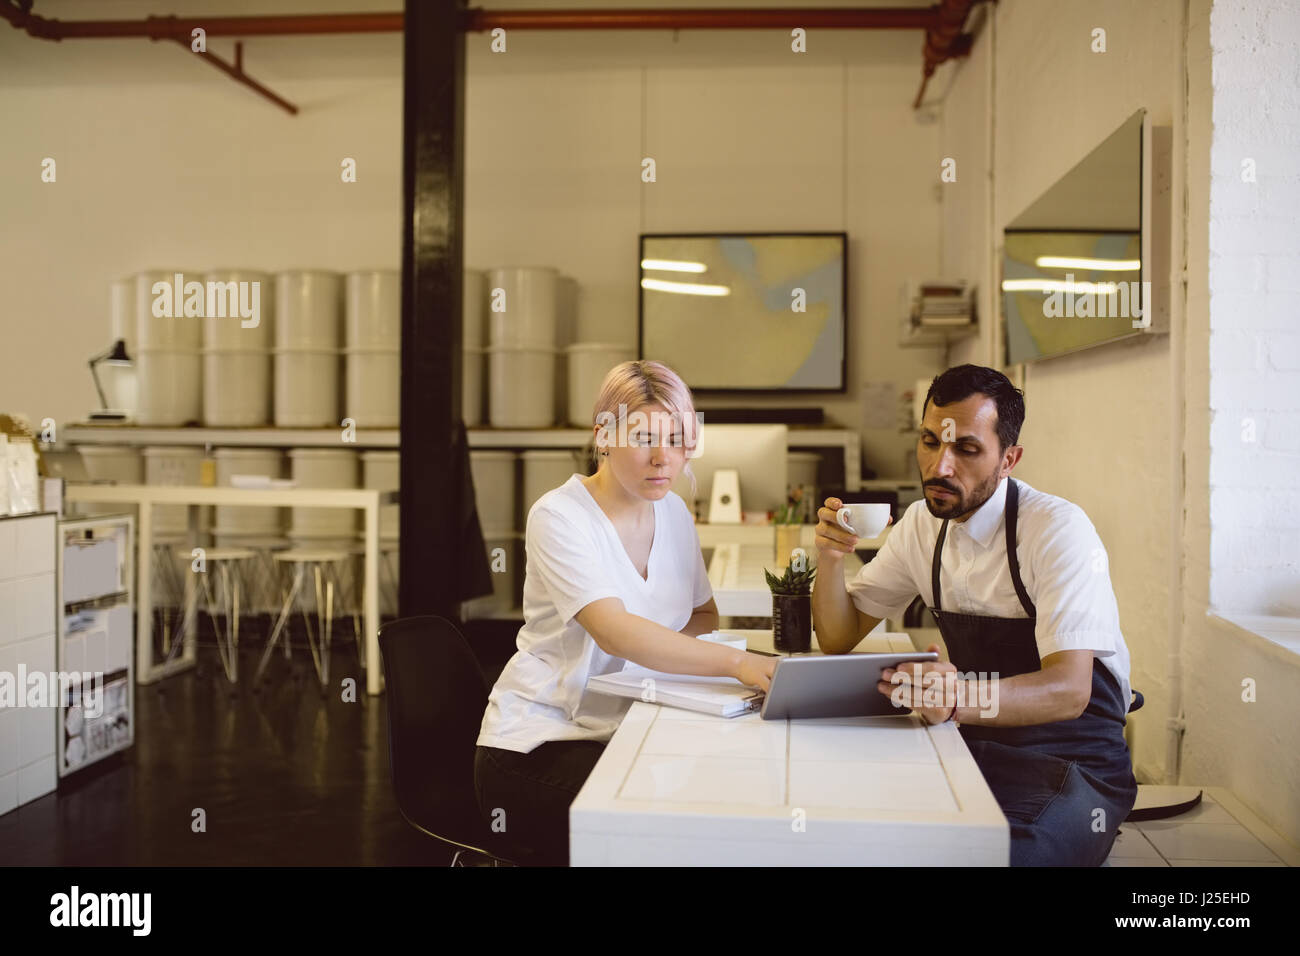 Male and female barista having coffee while using digital tablet in coffee shop - Stock Image